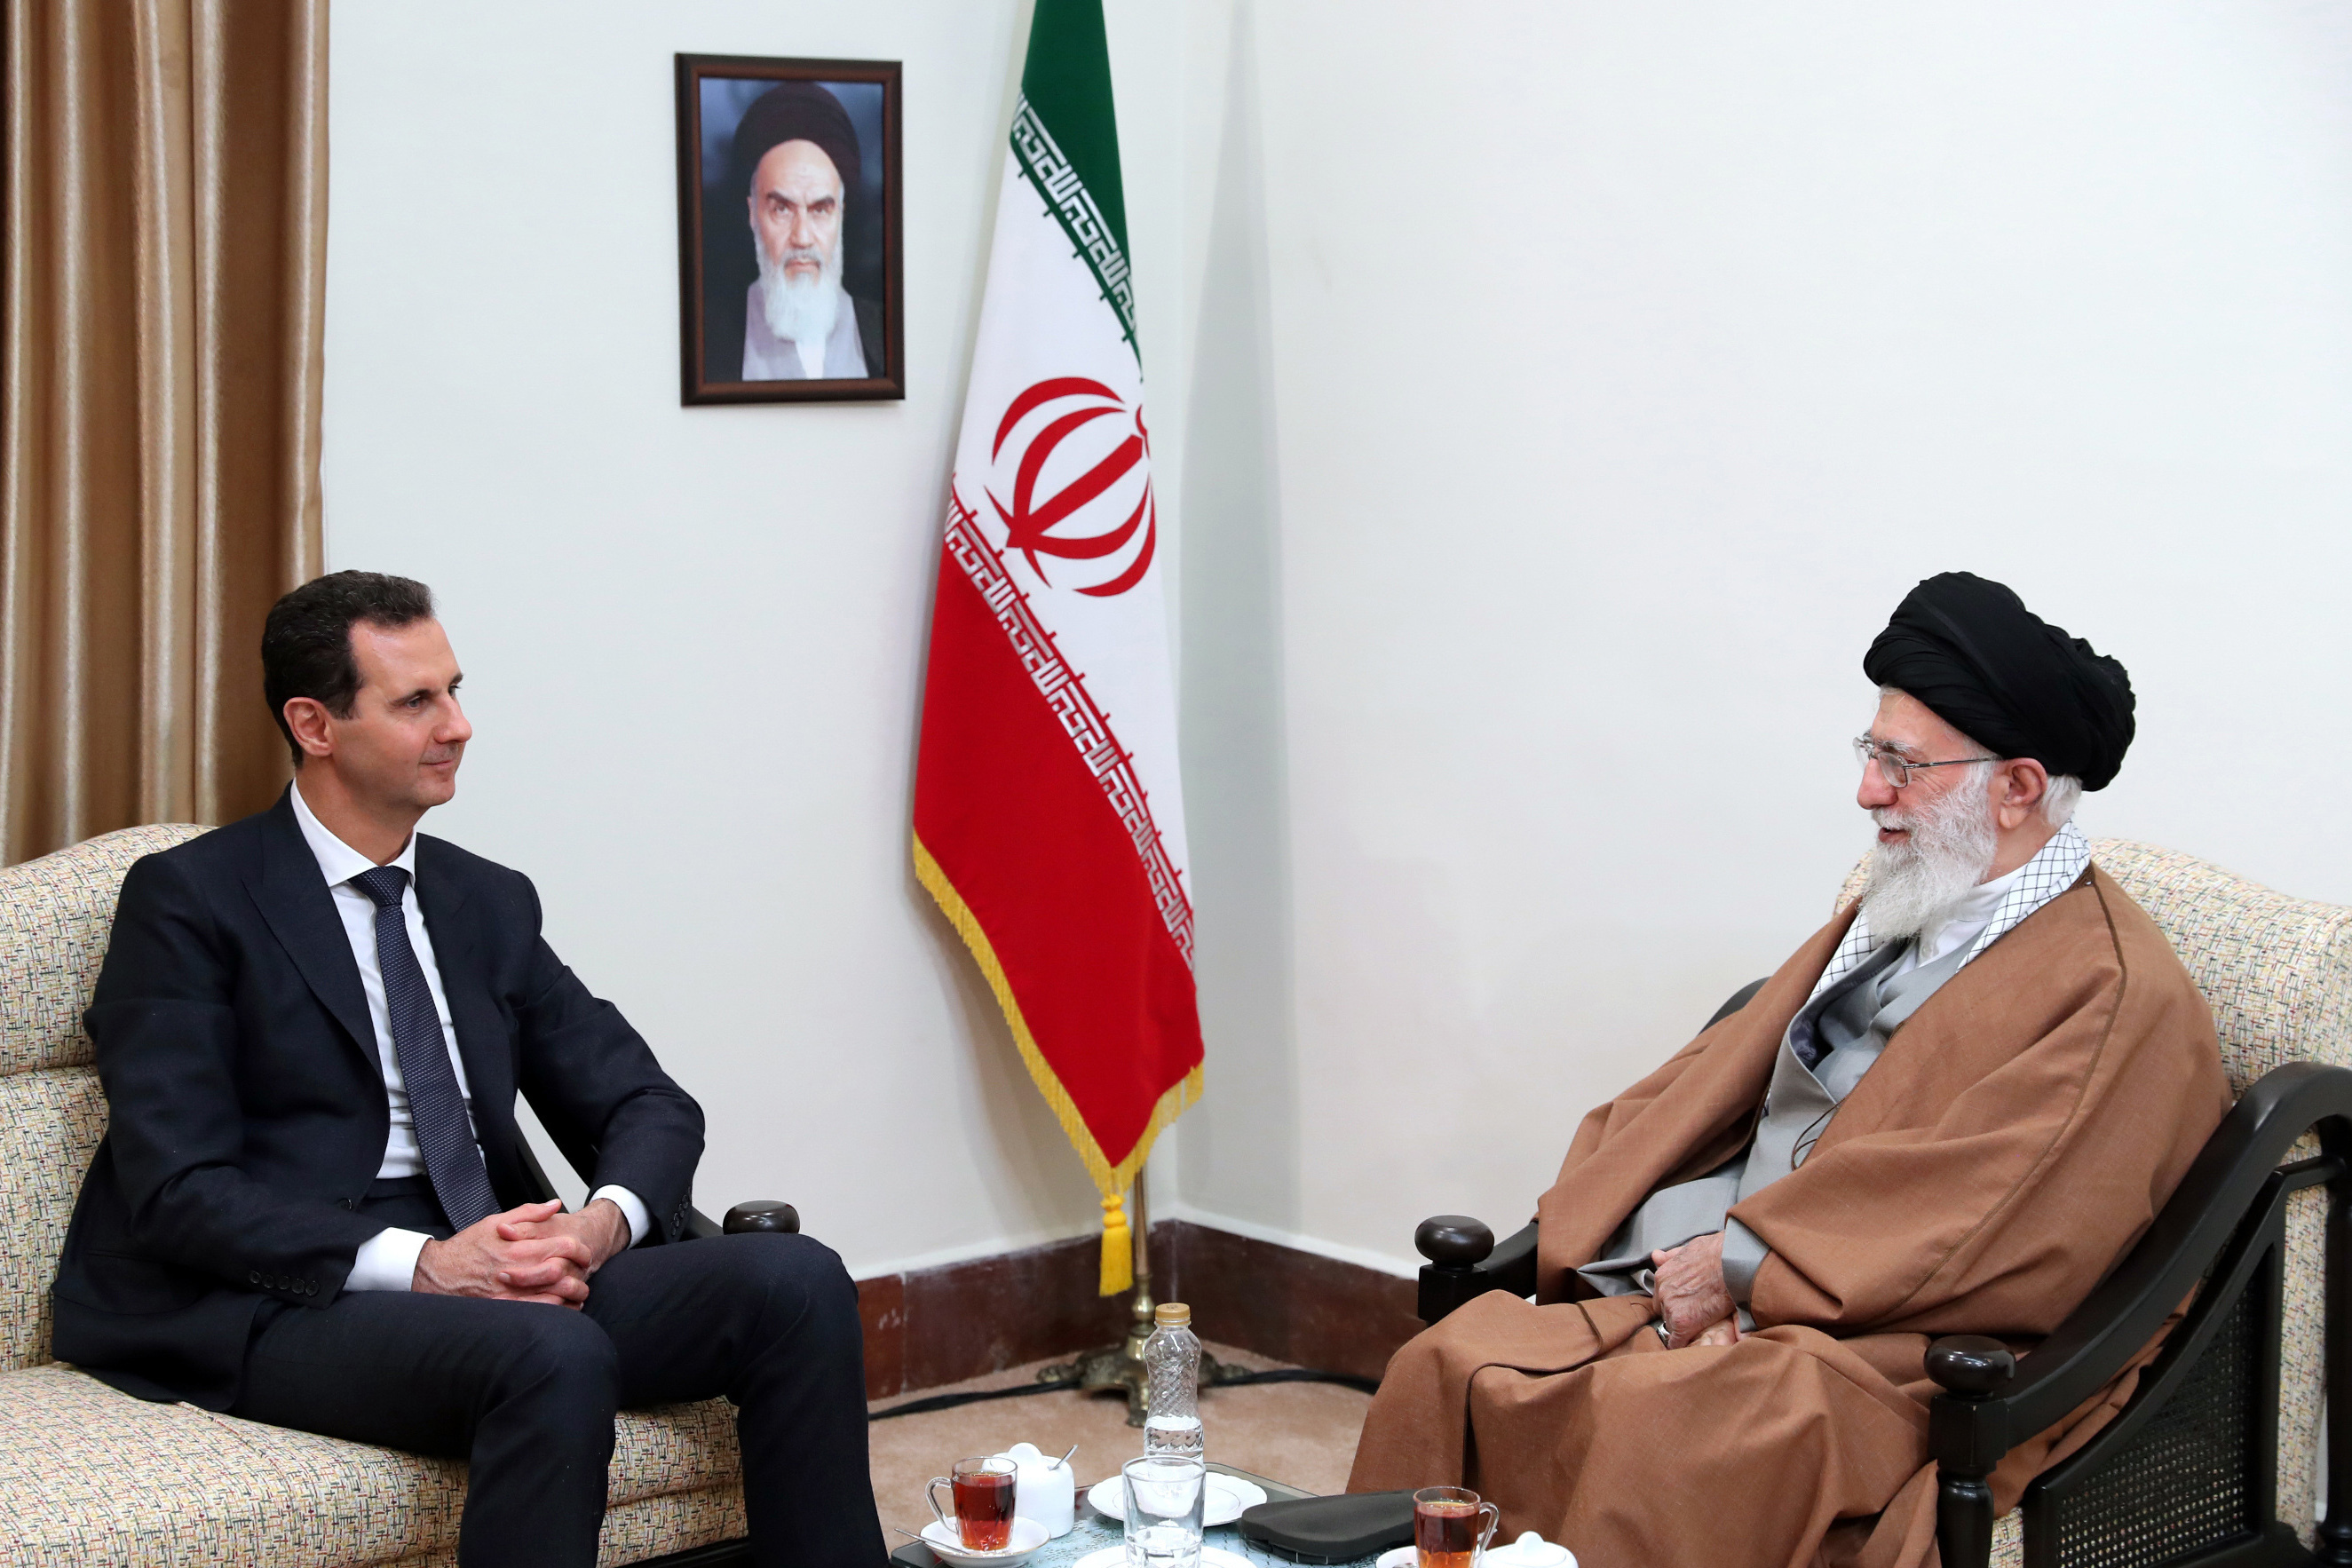 FILE - In this photo released by an official website of the office of the Iranian supreme leader, Supreme Leader Ayatollah Ali Khamenei, right, speaks with Syrian President Bashar al-Assad during their meeting in Tehran, Iran, Feb. 25, 2019.